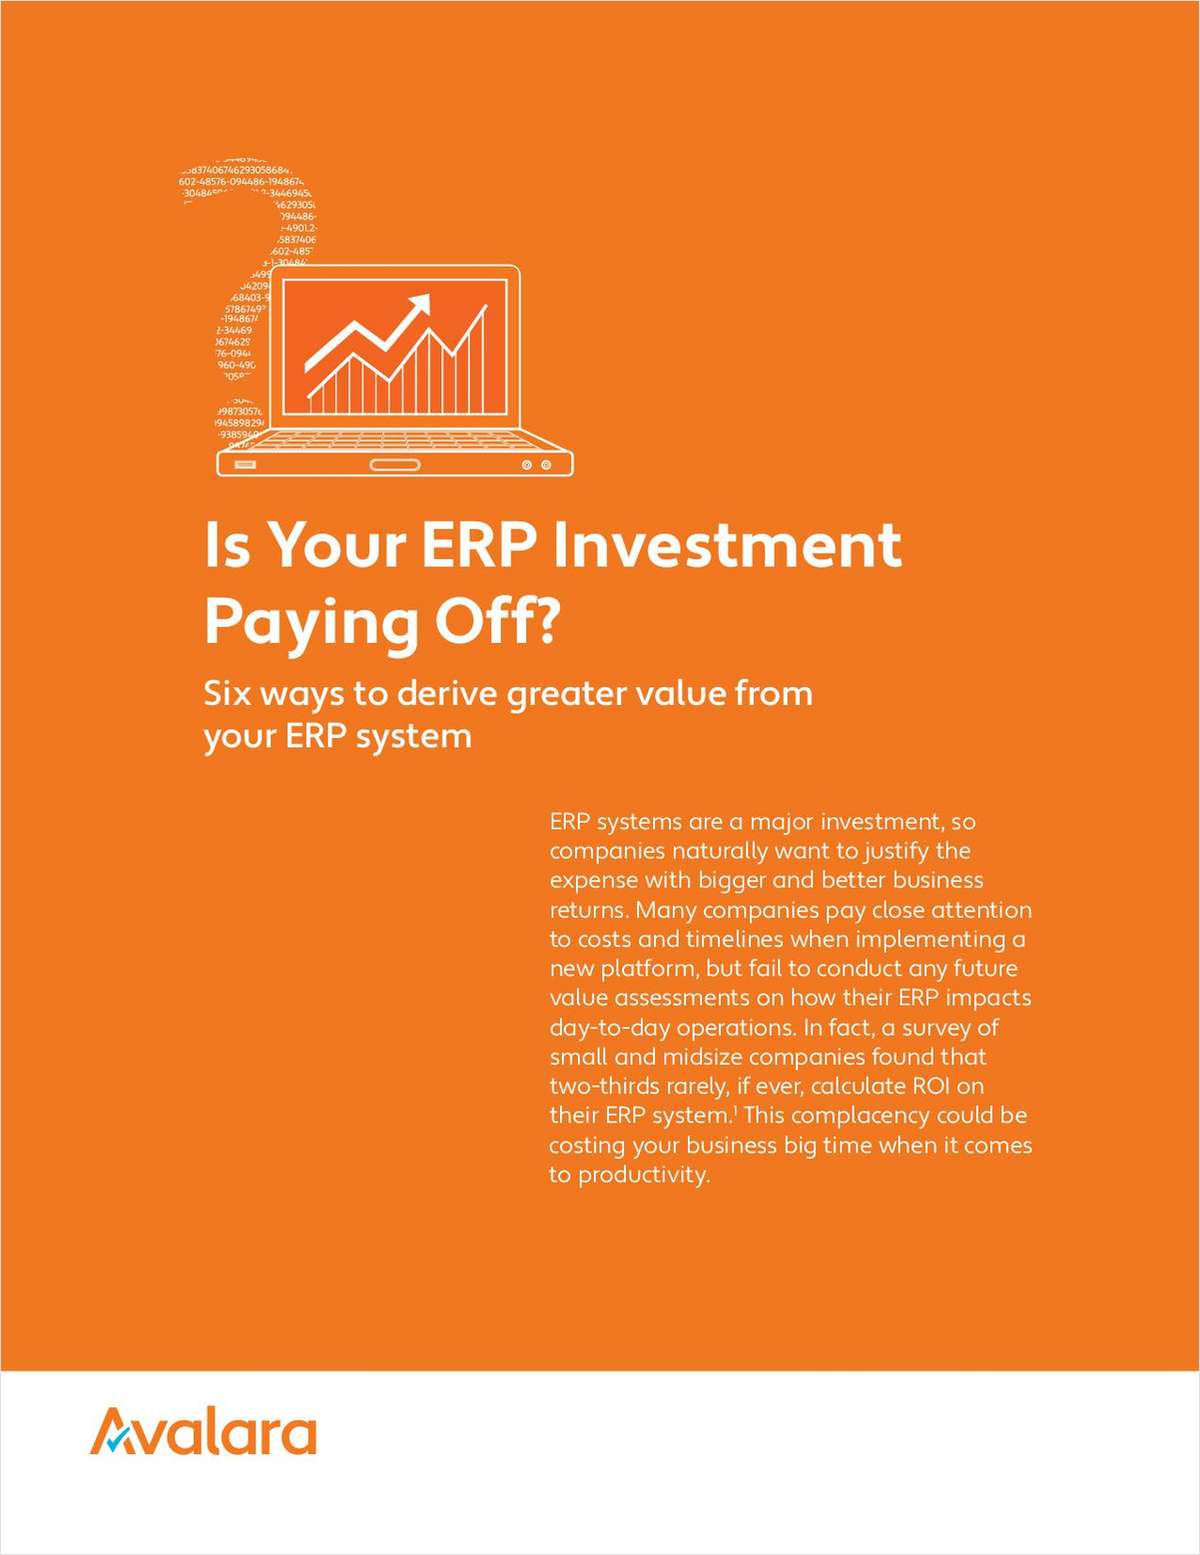 Is Your ERP Investment Paying Off?